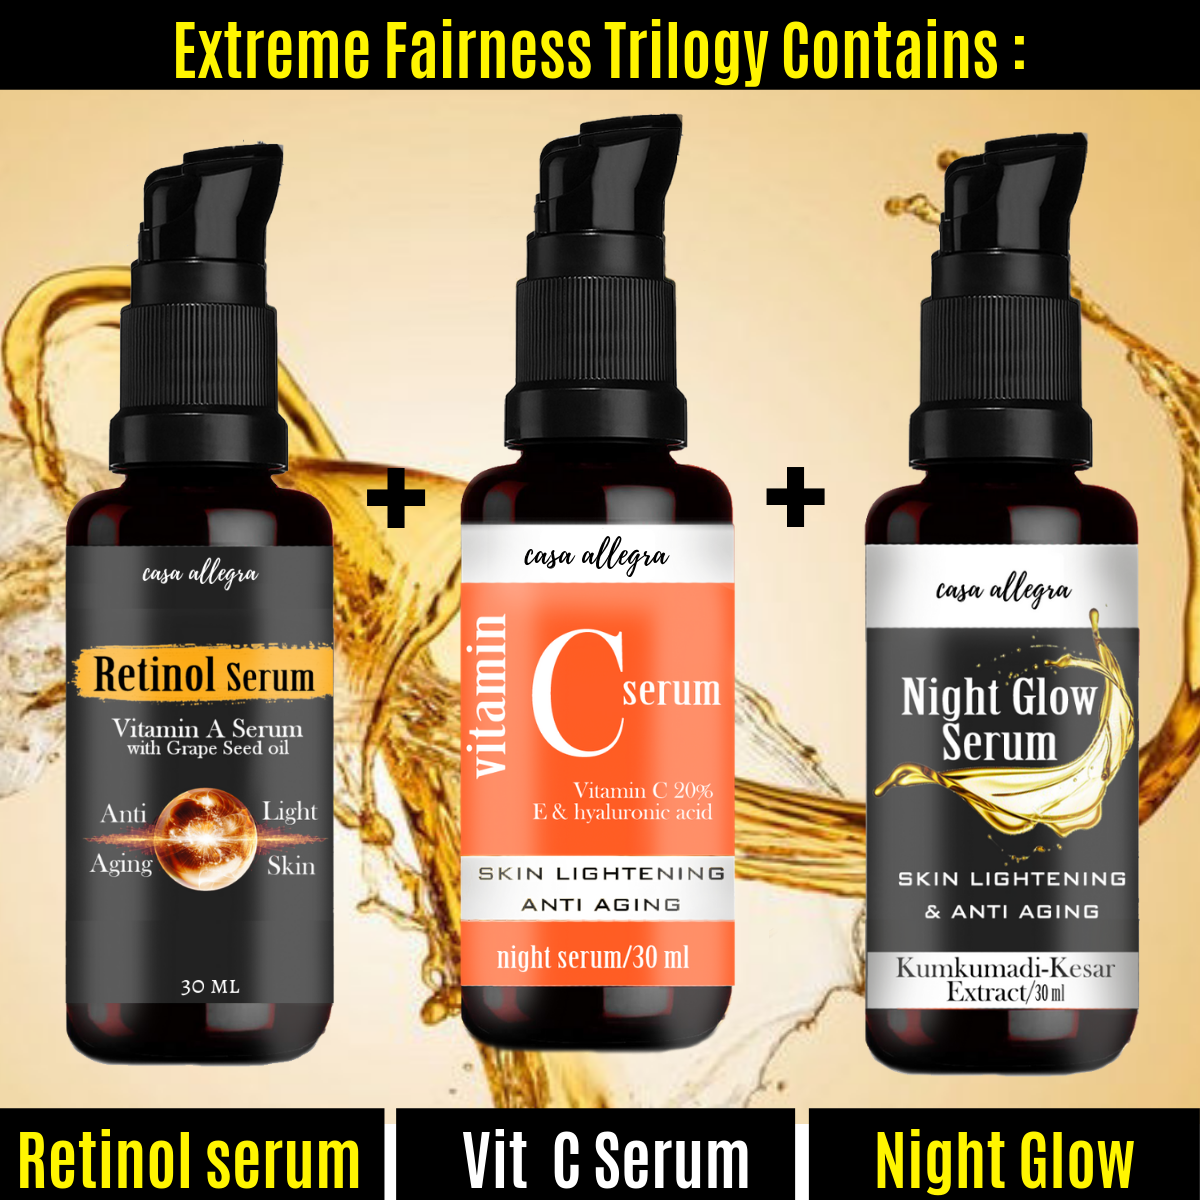 Extreme Fairness Trilogy - Vitamin C Serum with Vitamin C 20% and Hyaluronic Acid + Retinol Serum with Can-berry Extracts + Night Glow Serum with Kumkumadi Tailam - 30 ml (Each)